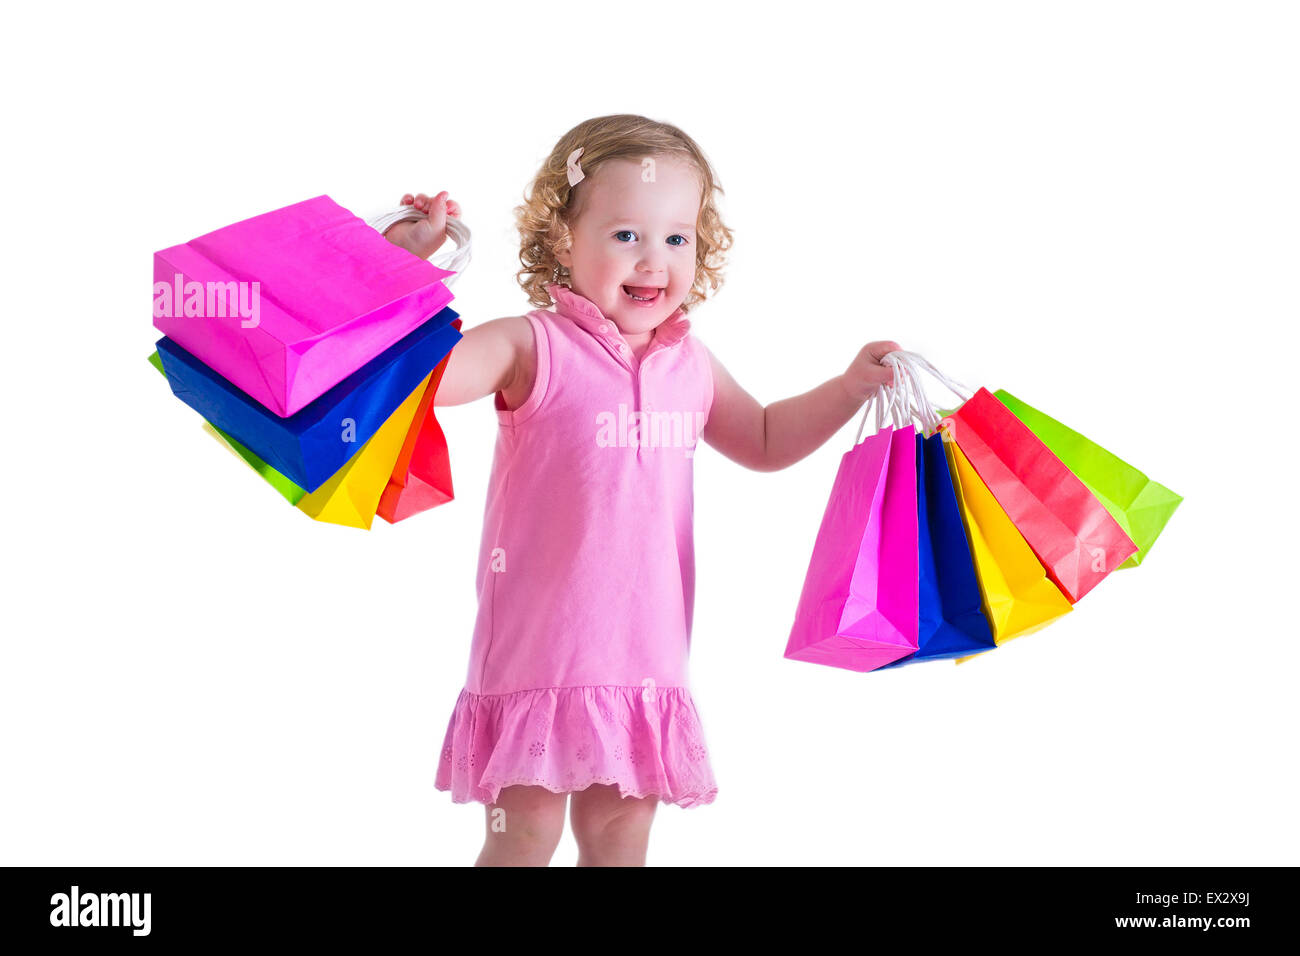 7d464a7bd Little girl in a pink dress holding colorful shopping bags. Child in a shop  buying clothes. Sale in a store. Kids with purchase